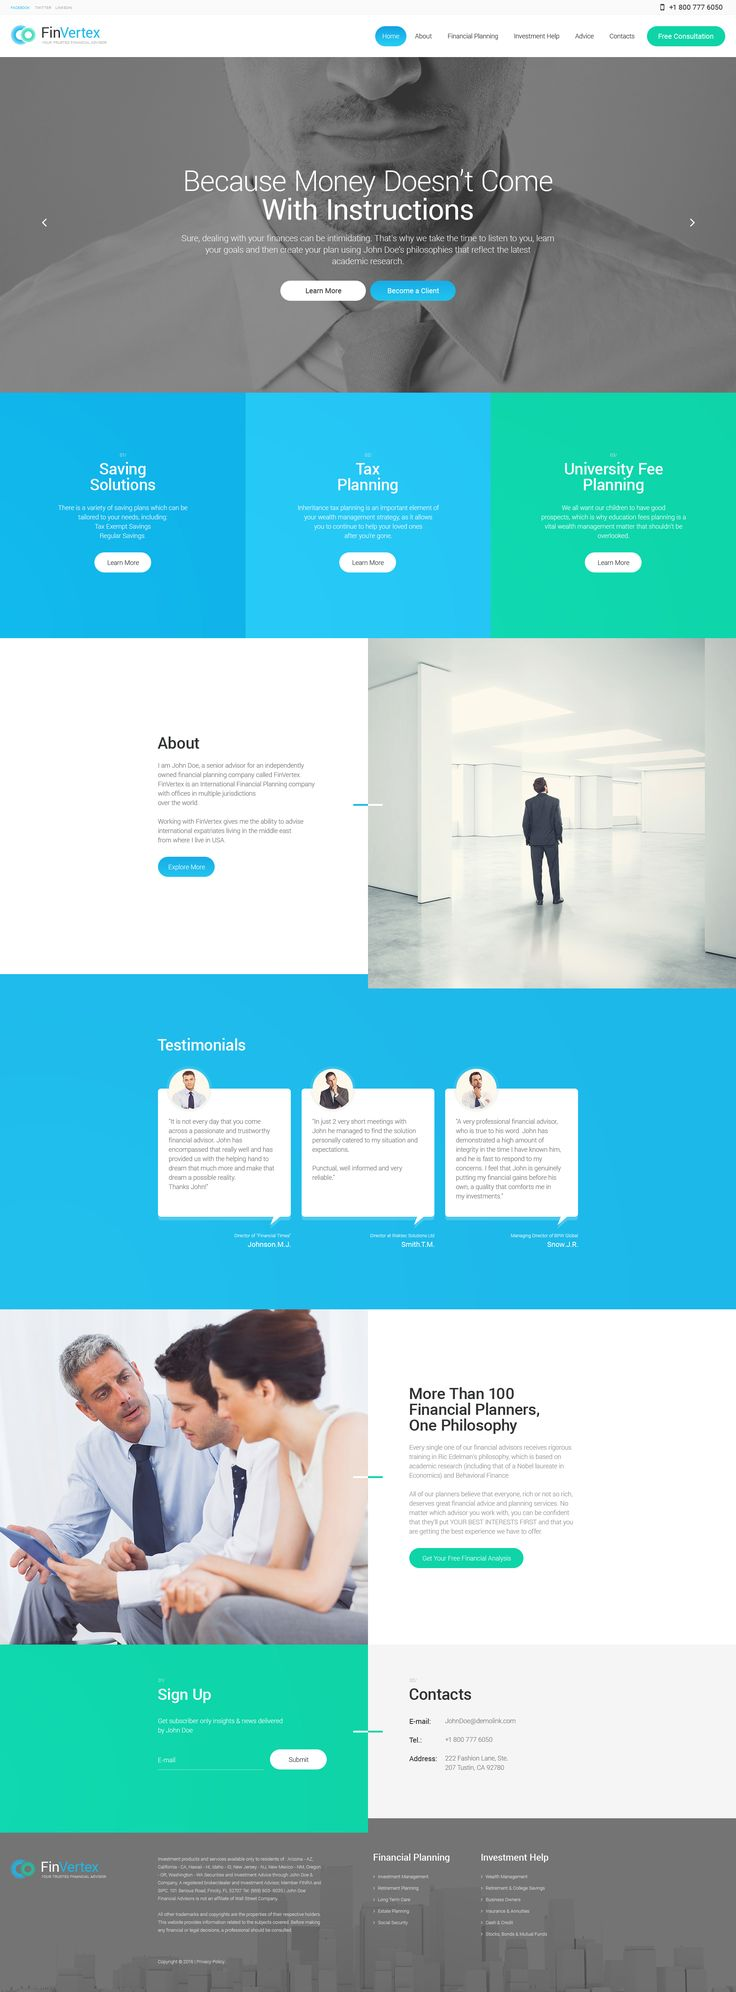 Financial Advisor Services WordPress Theme http://www.templatemonster.com/wordpress-themes/fin-vertex-wordpress-theme-57758.html